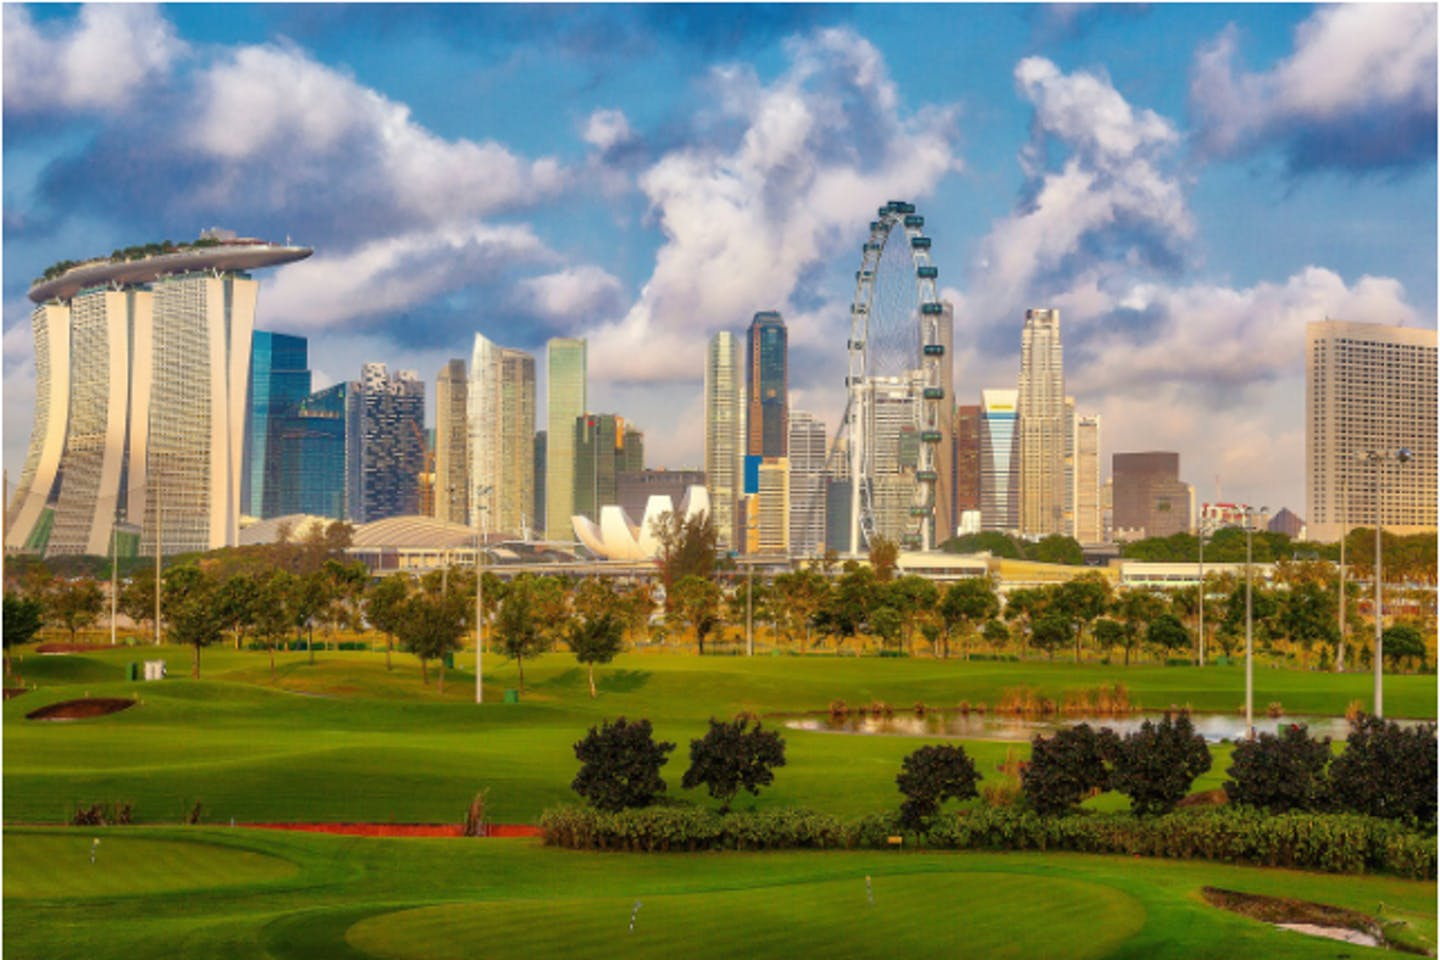 Singapore: a greened vision of the future that is not just about liveability, but a more sustainable financial ecosystem, says Steven Stone. Image: Pexels